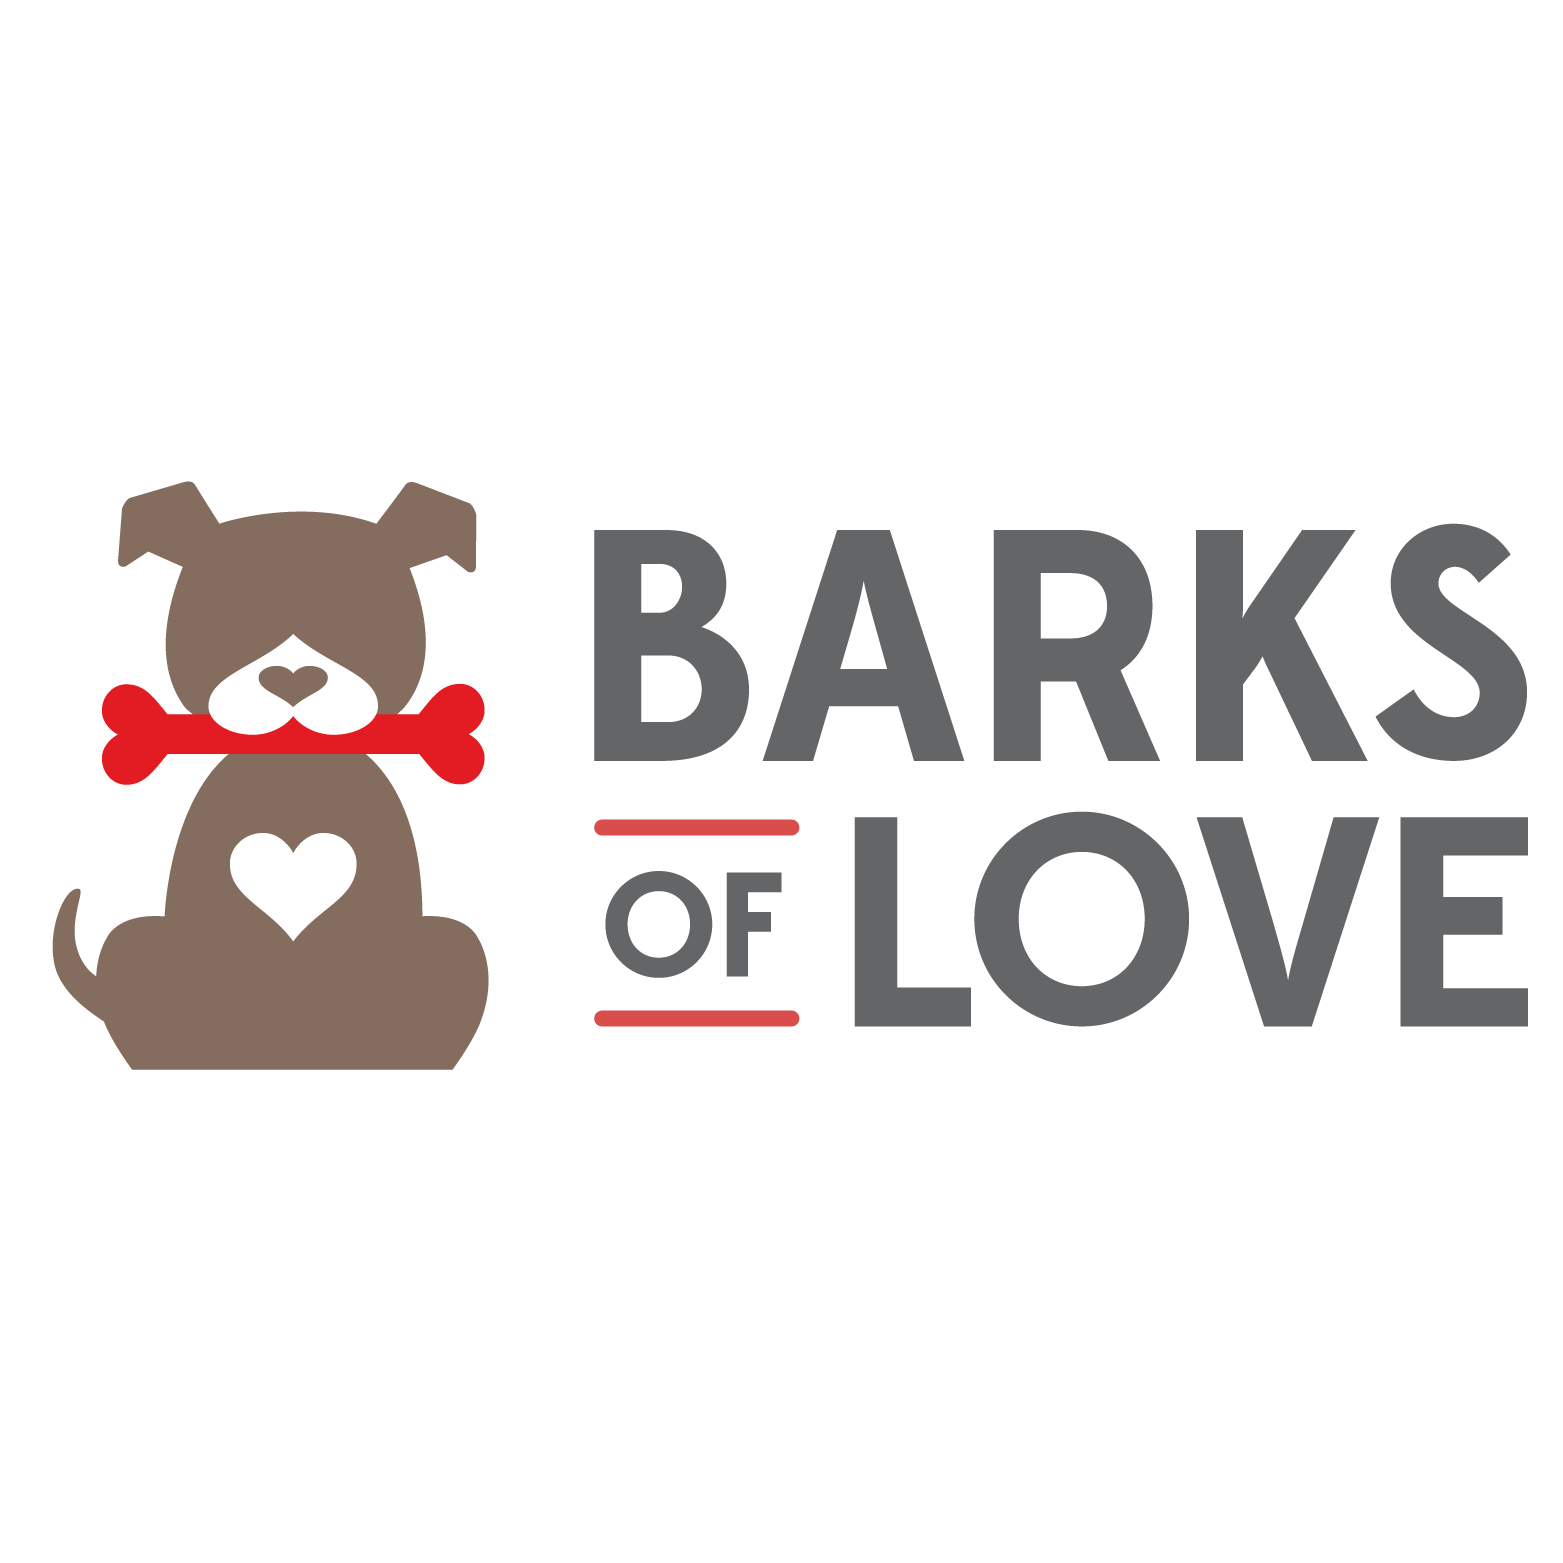 BarksofLove-375Crowdrise-01.png